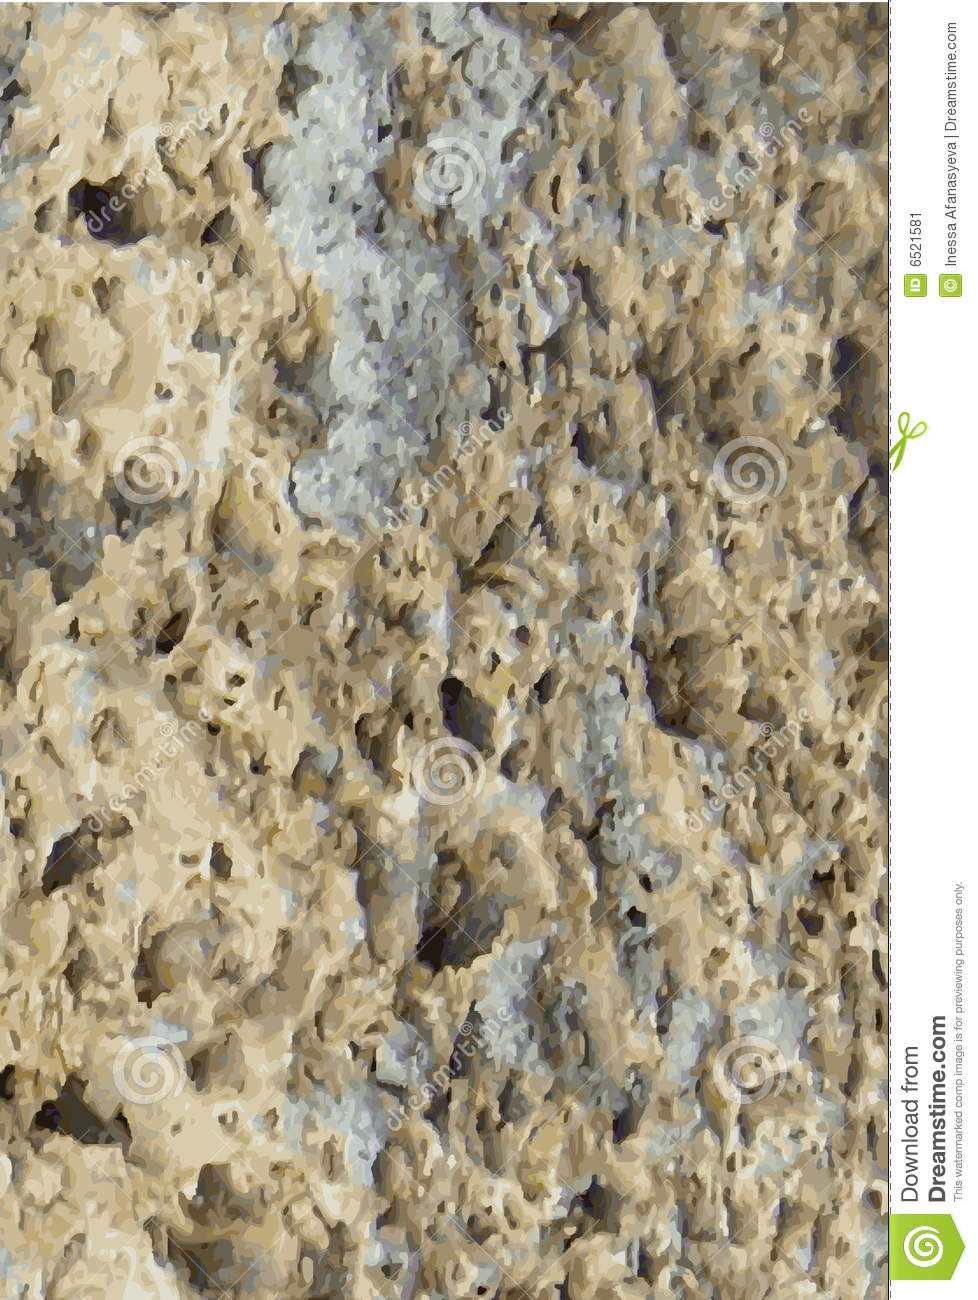 Natural Stone Structure : Structure of a natural stone stock image